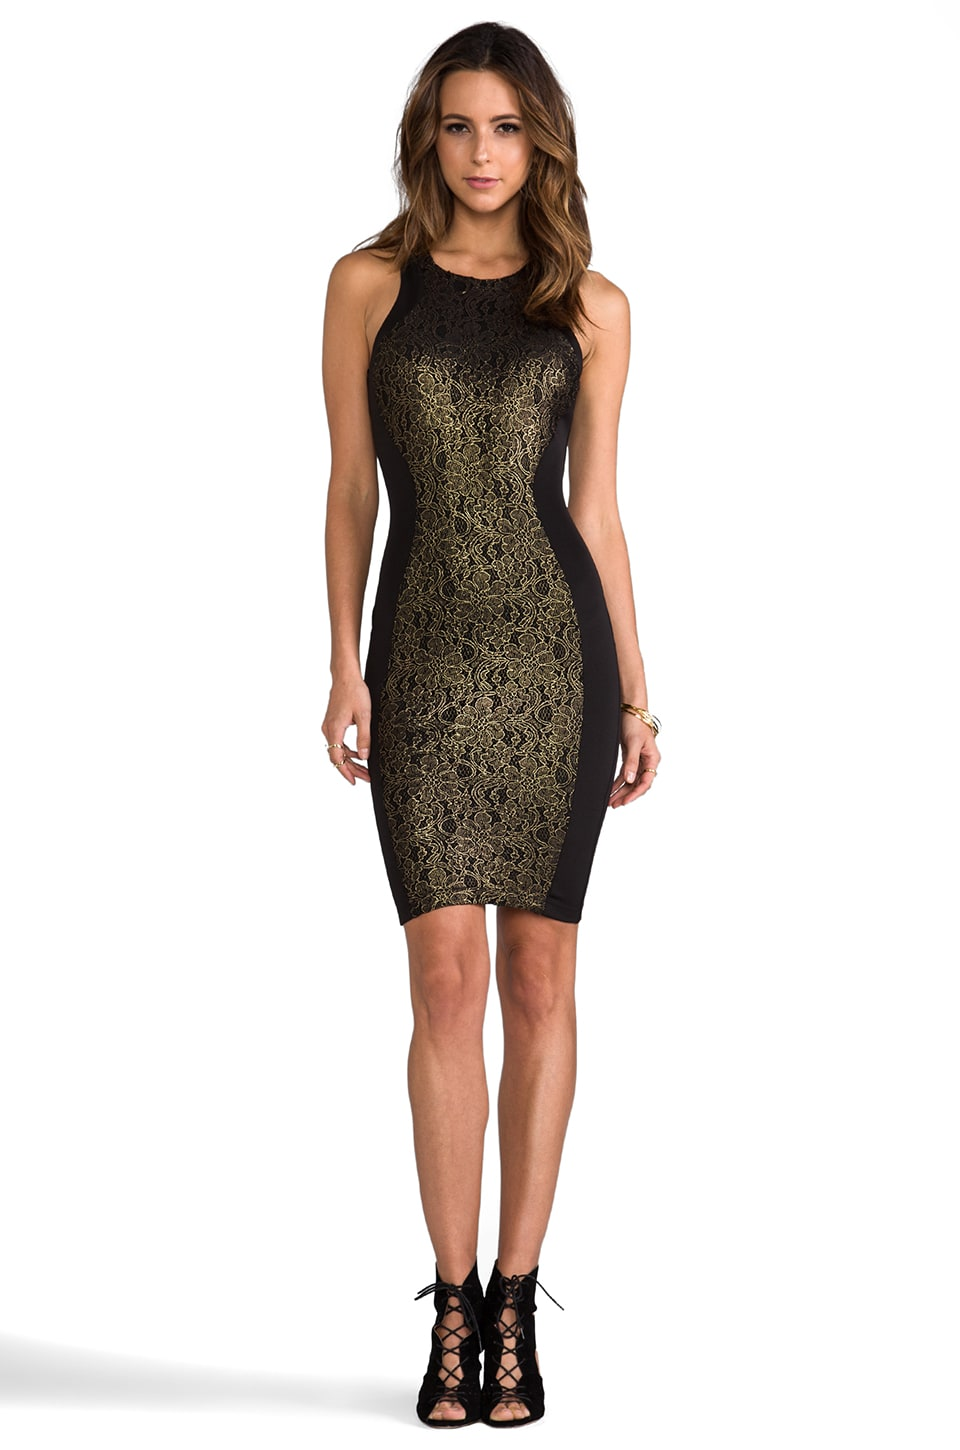 Torn by Ronny Kobo Shiran Dress in Gold/Black